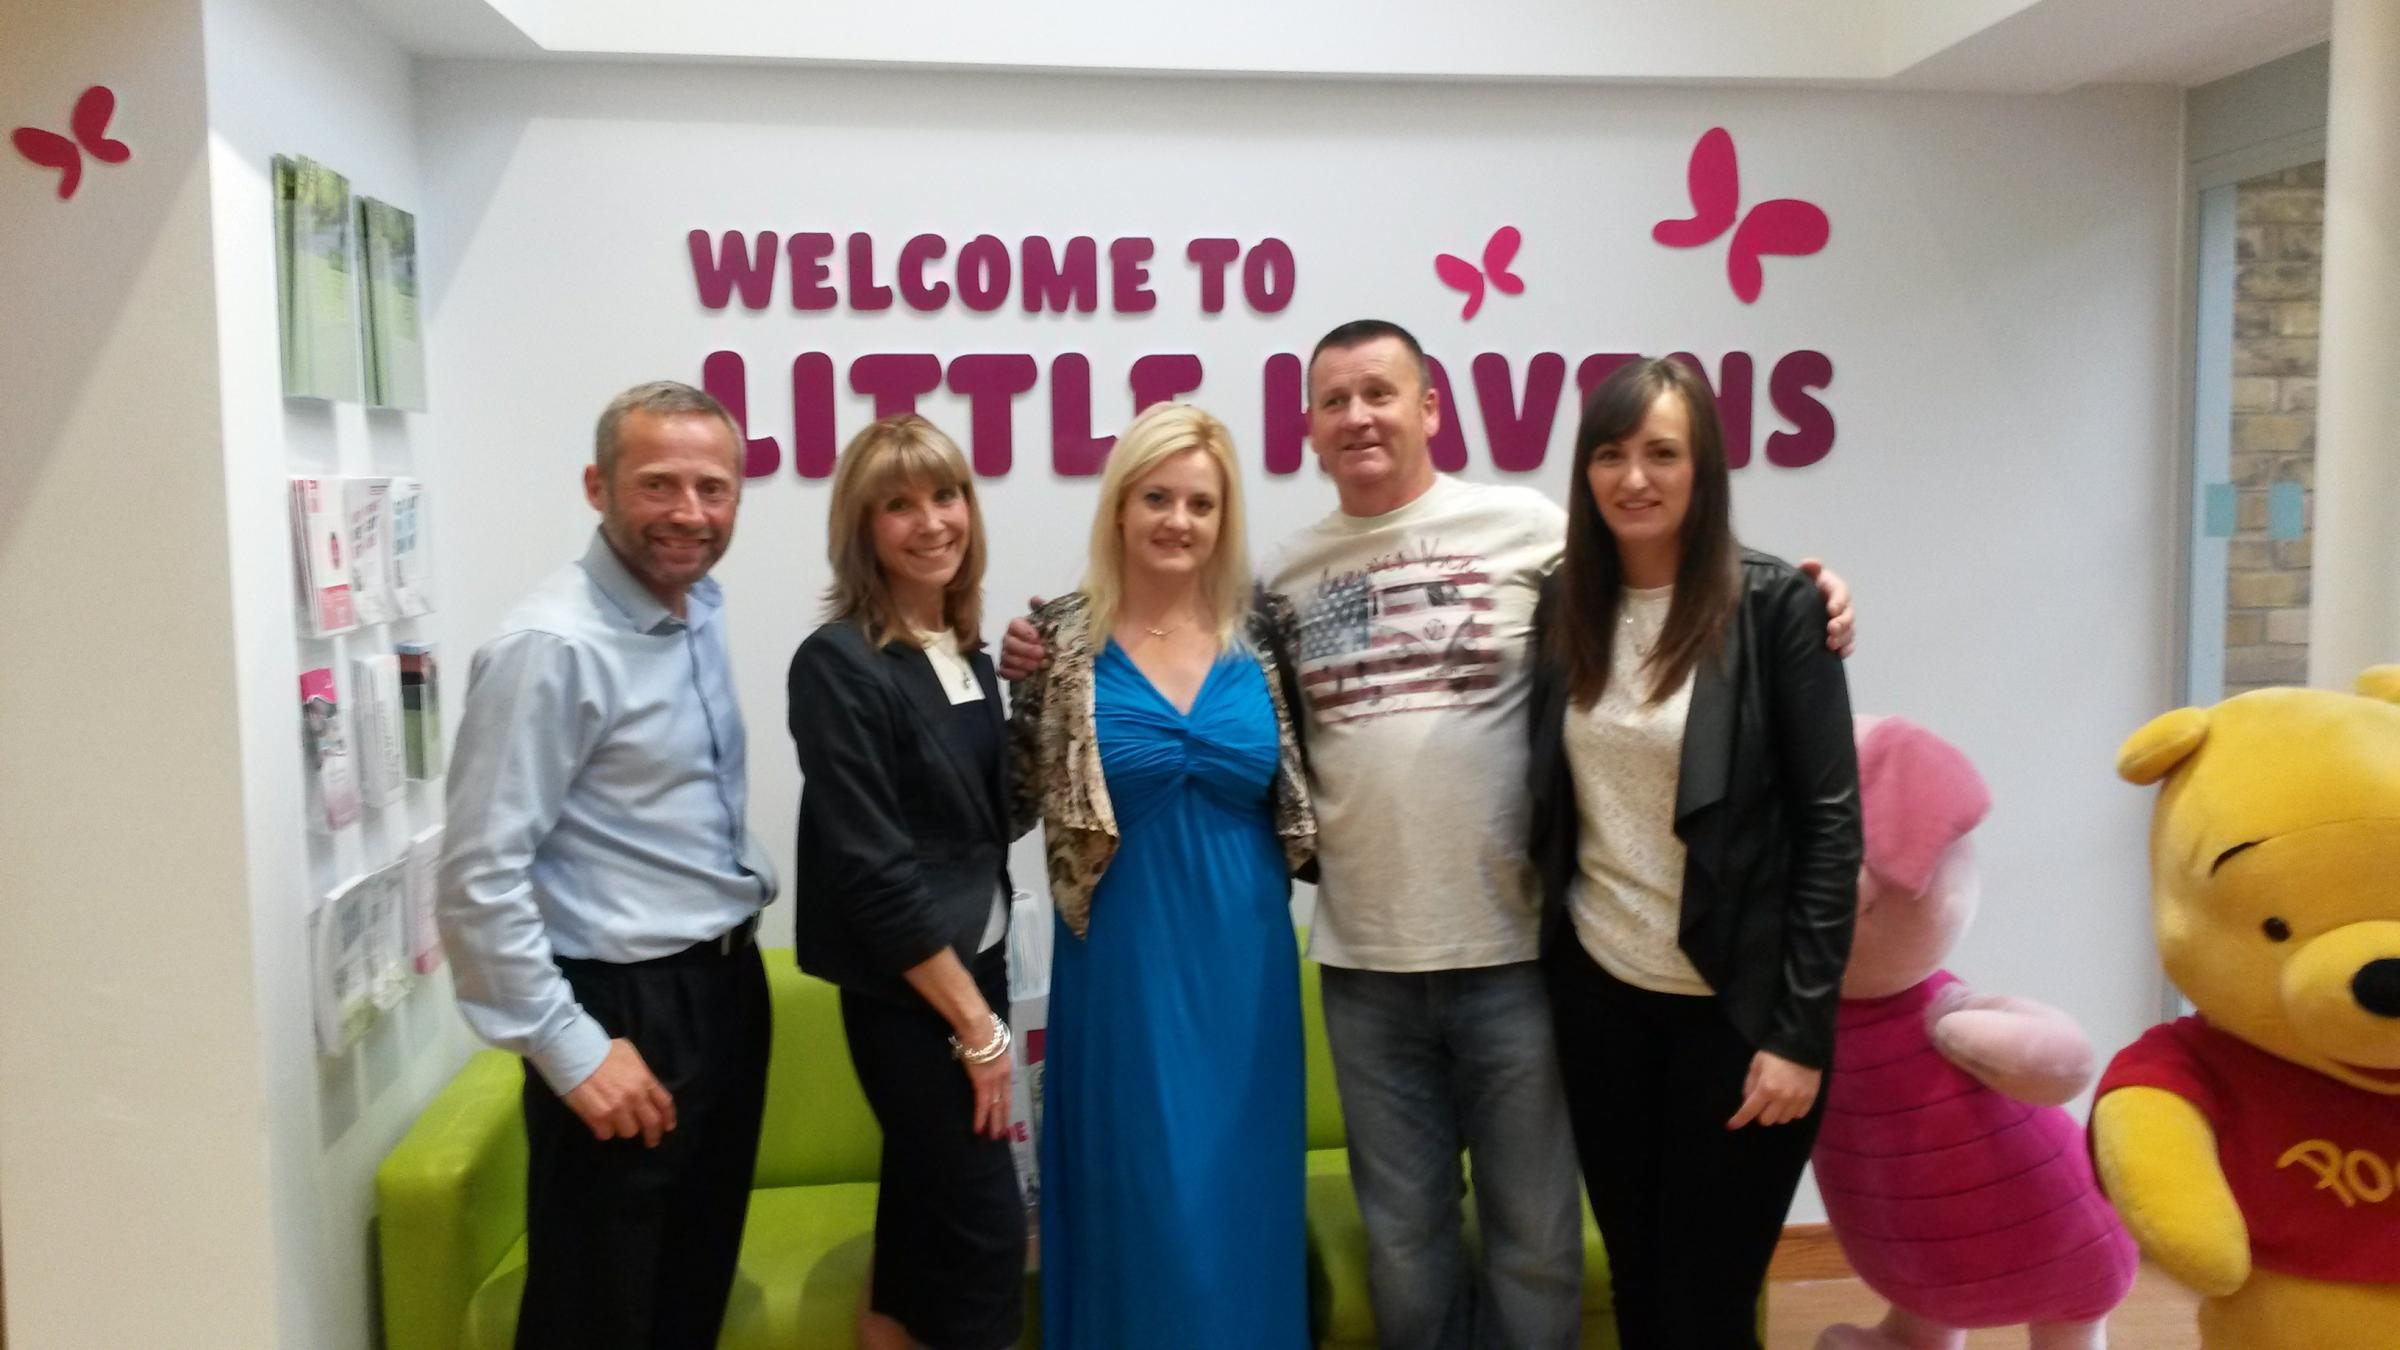 Welcome support – Little Havens Hospice community fundraiser Peter Hall with Vickie Collins and Chloe Emmons, Paul Emmons and Candice Emmons